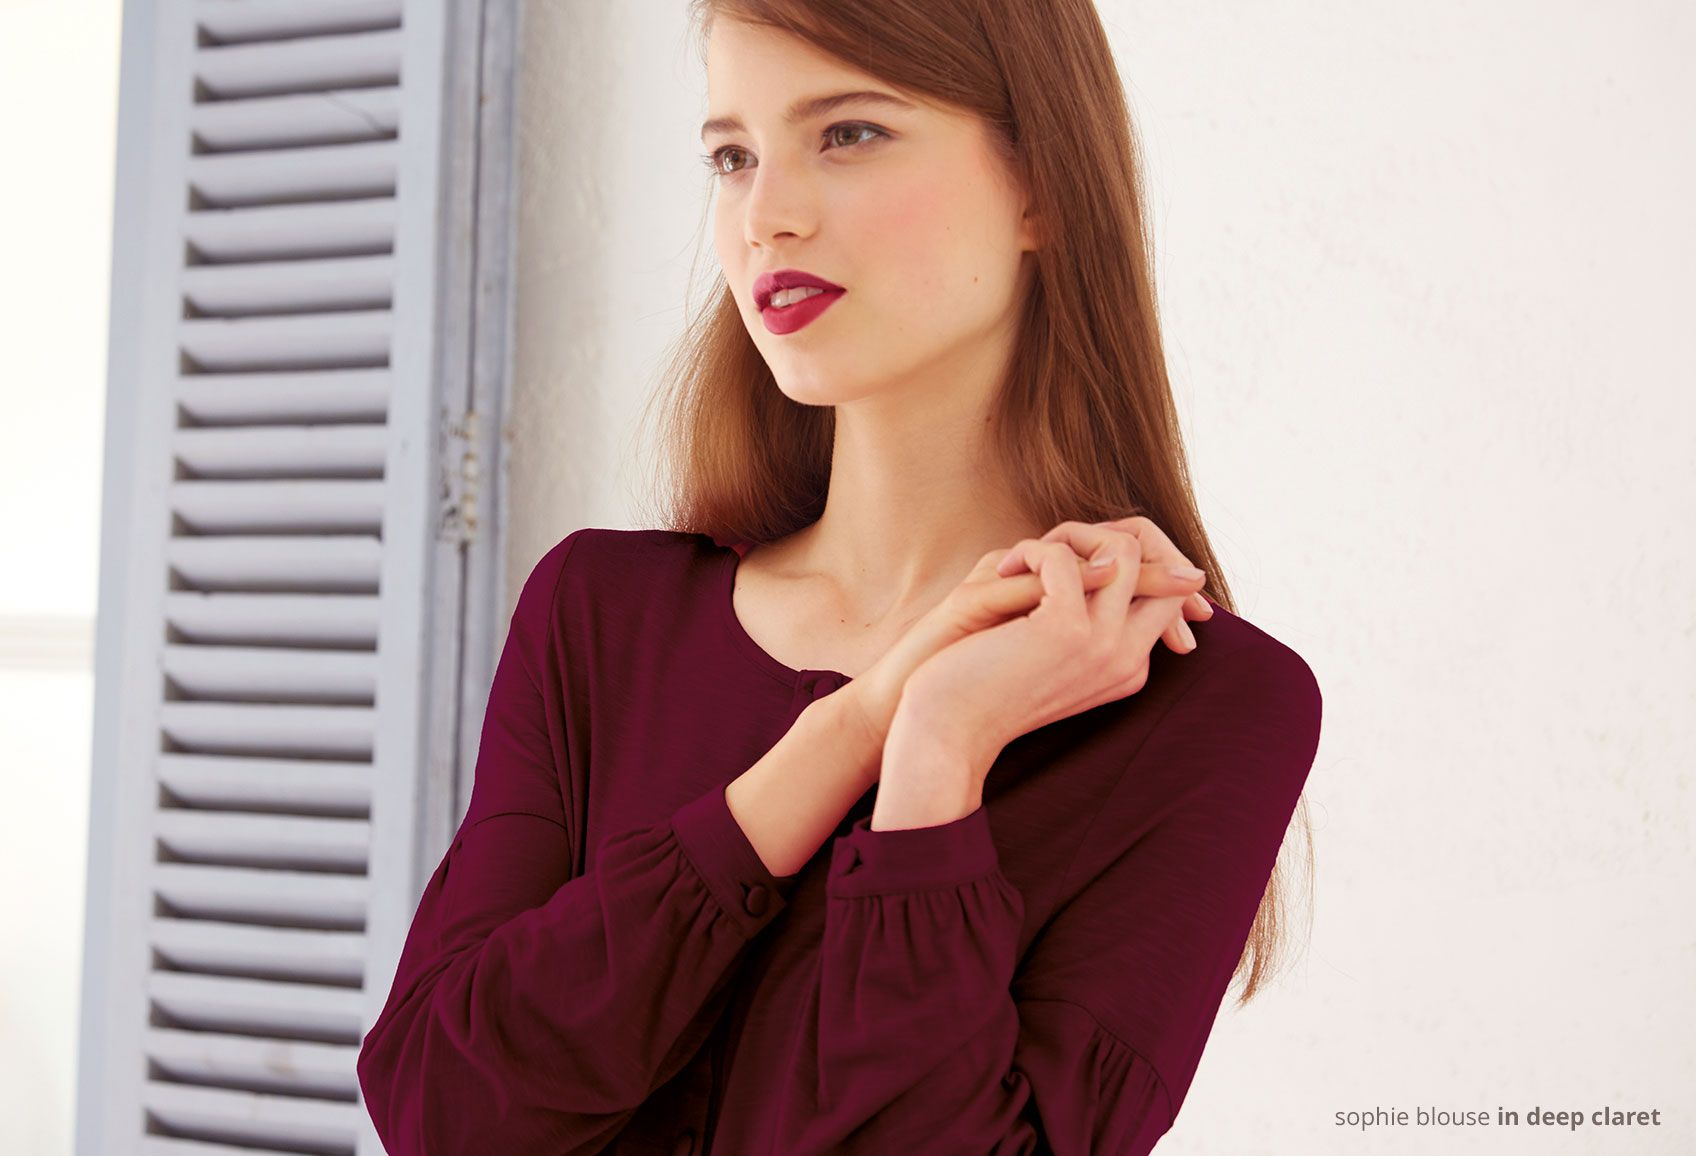 sophie blouse in deep claret - perfect for a summer palette at www.kettlewellcolours.co.uk